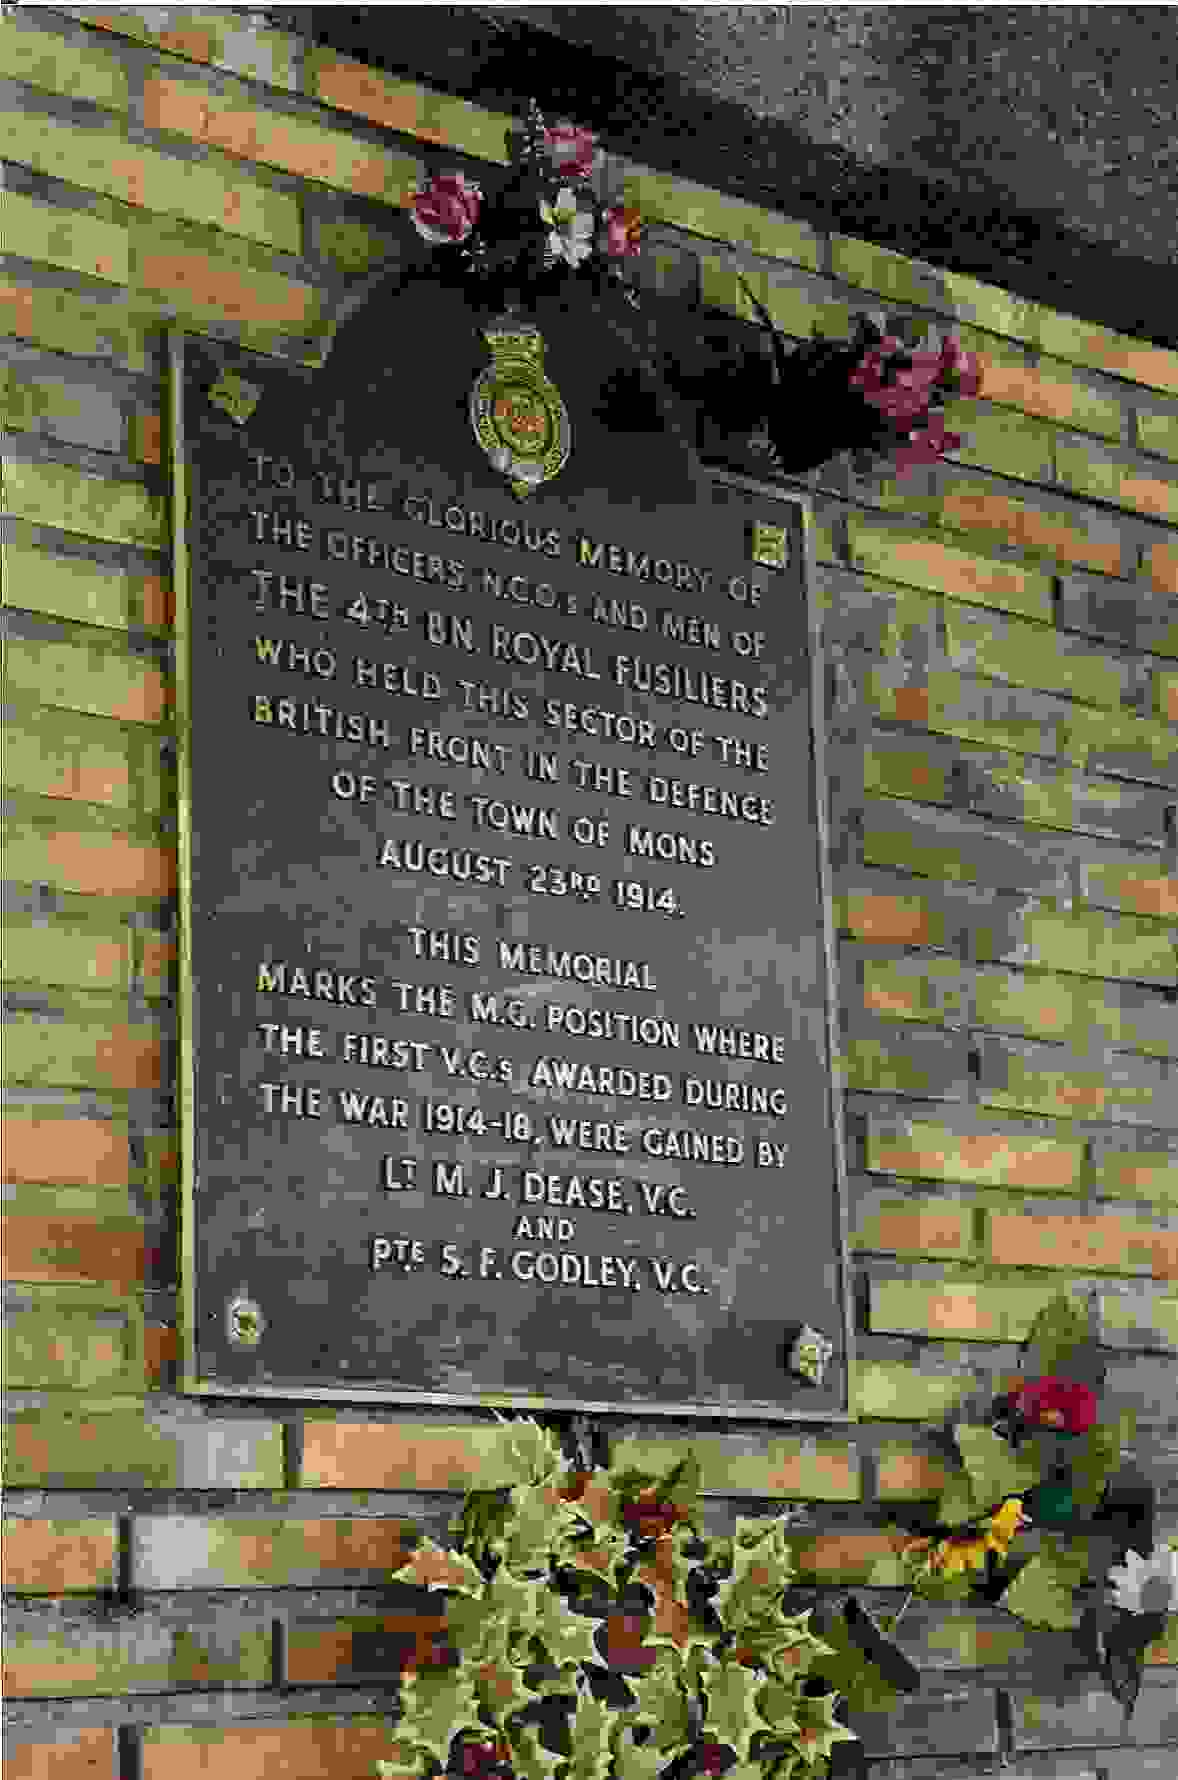 plaque_commemorating_the_4th_battalion_fusiliers